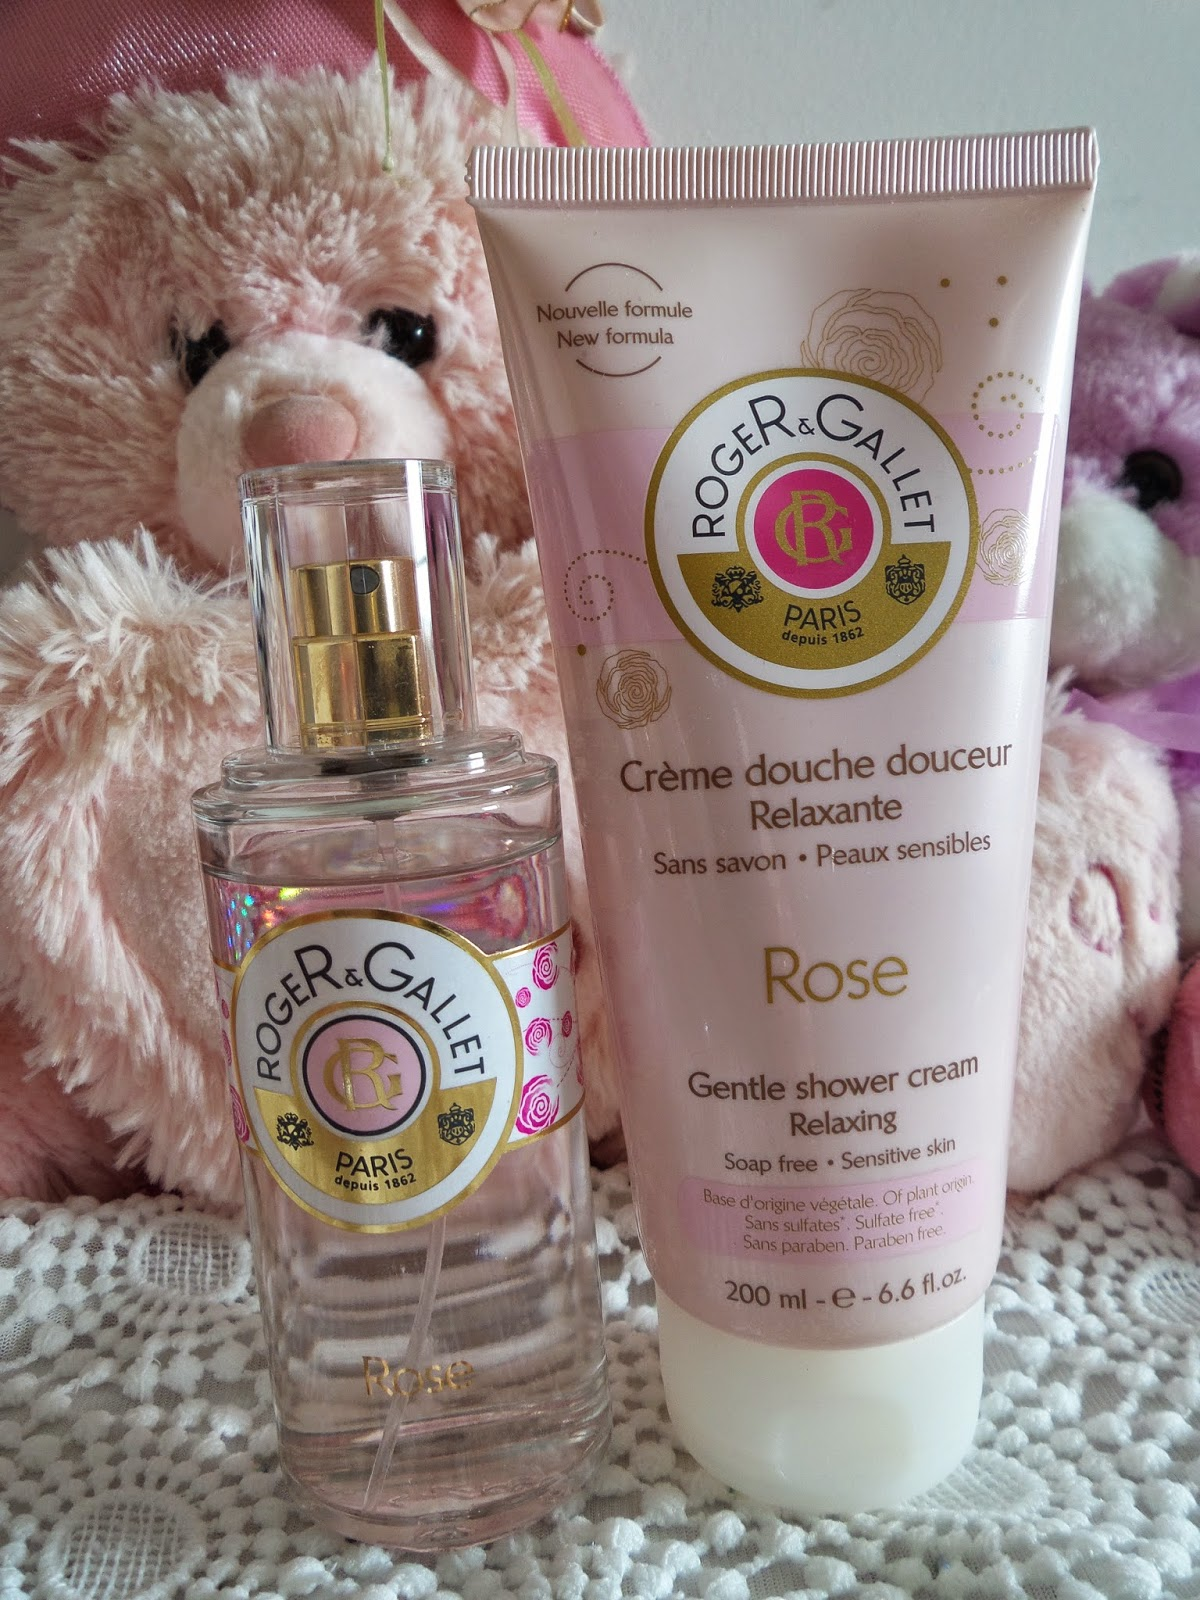 Gel  para Banho Douche Douceur Relaxante Roger & Gallet,  Perfume Feminino Rose Roger & Gallet:  Floral cítrica